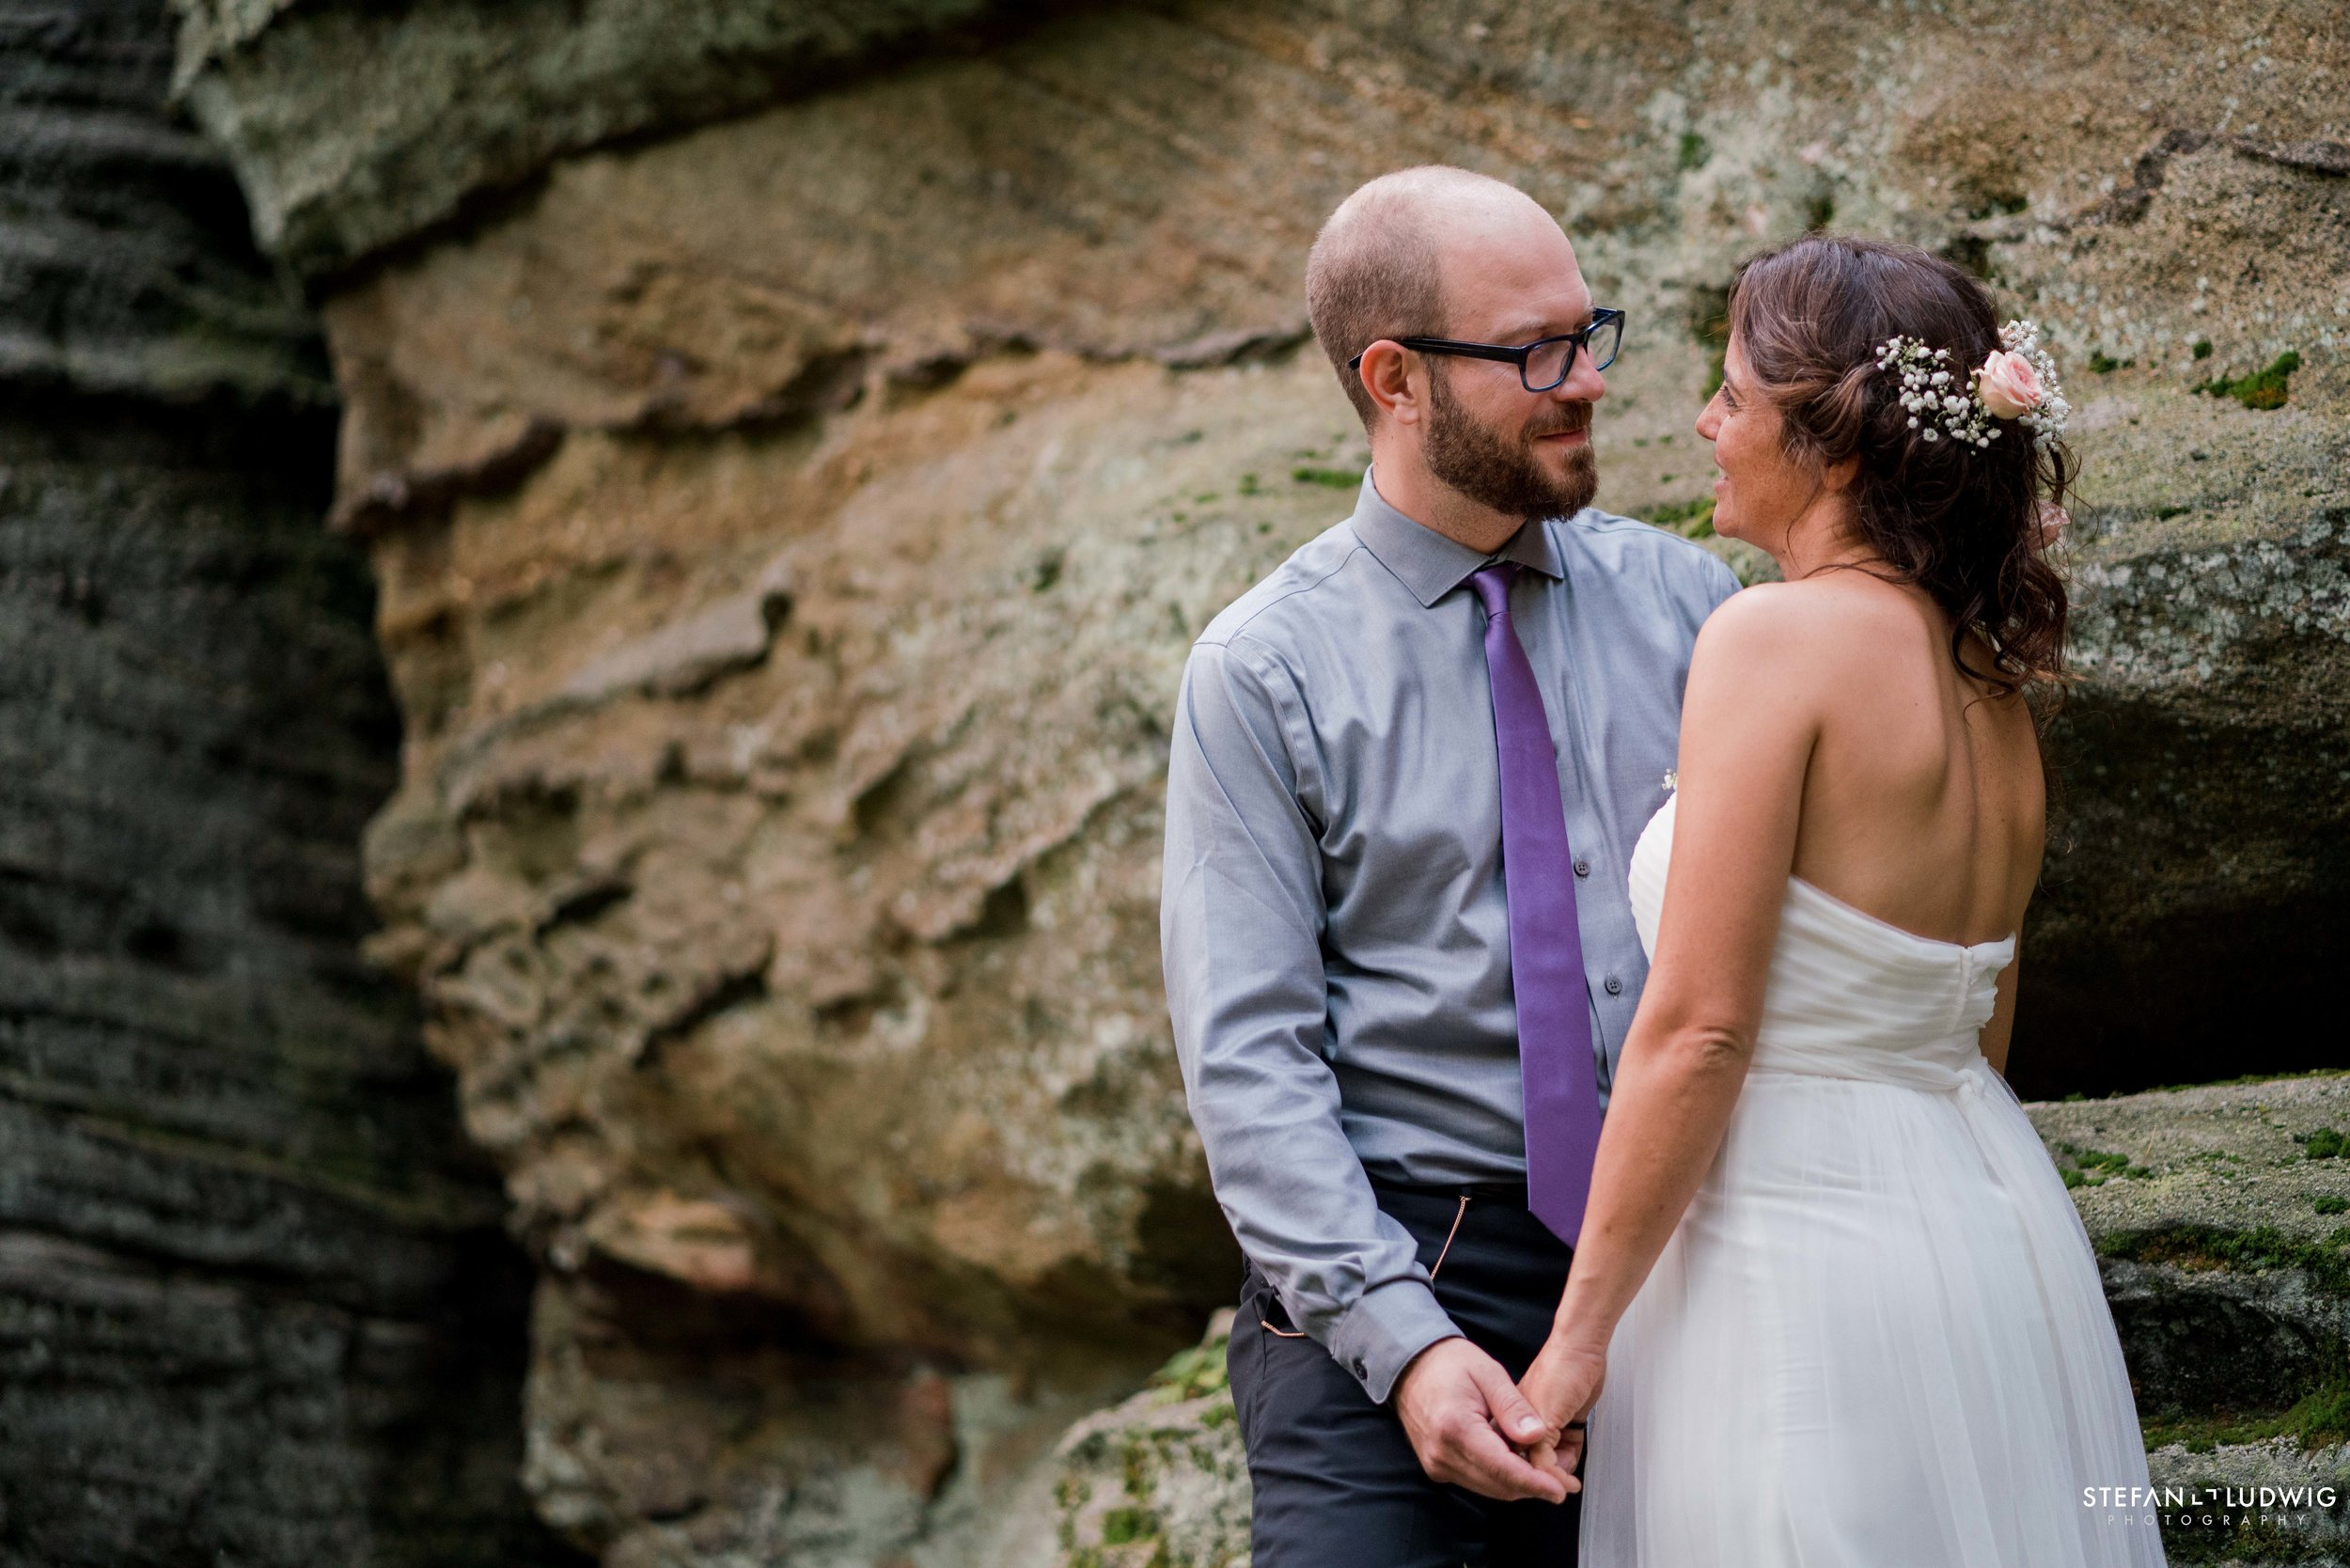 Blog Wedding Photography Mariana and John in Ellicottville NY by Stefan Ludwig Photography-62.jpg